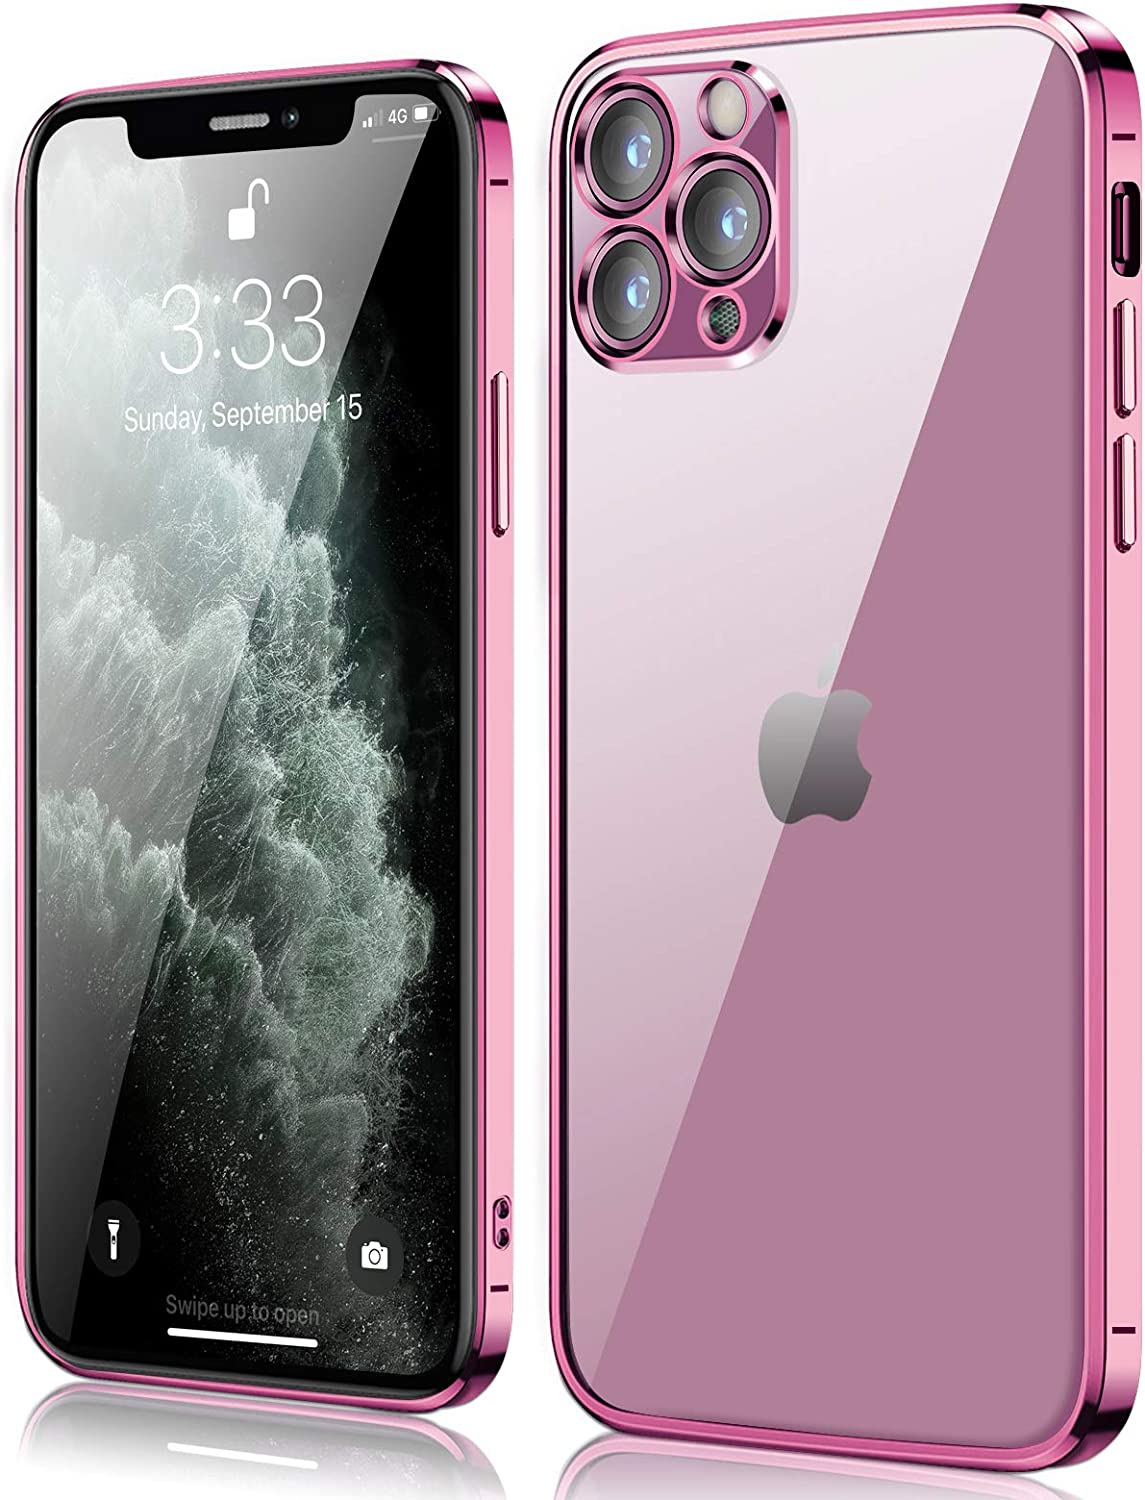 Compatible with iPhone 11 pro max Case, peafowl Clear Slim Soft Full Coverage Protective TPU Silicone Cell Phone Case Pink for iPhone 11 Pro Max (6.5 inch)